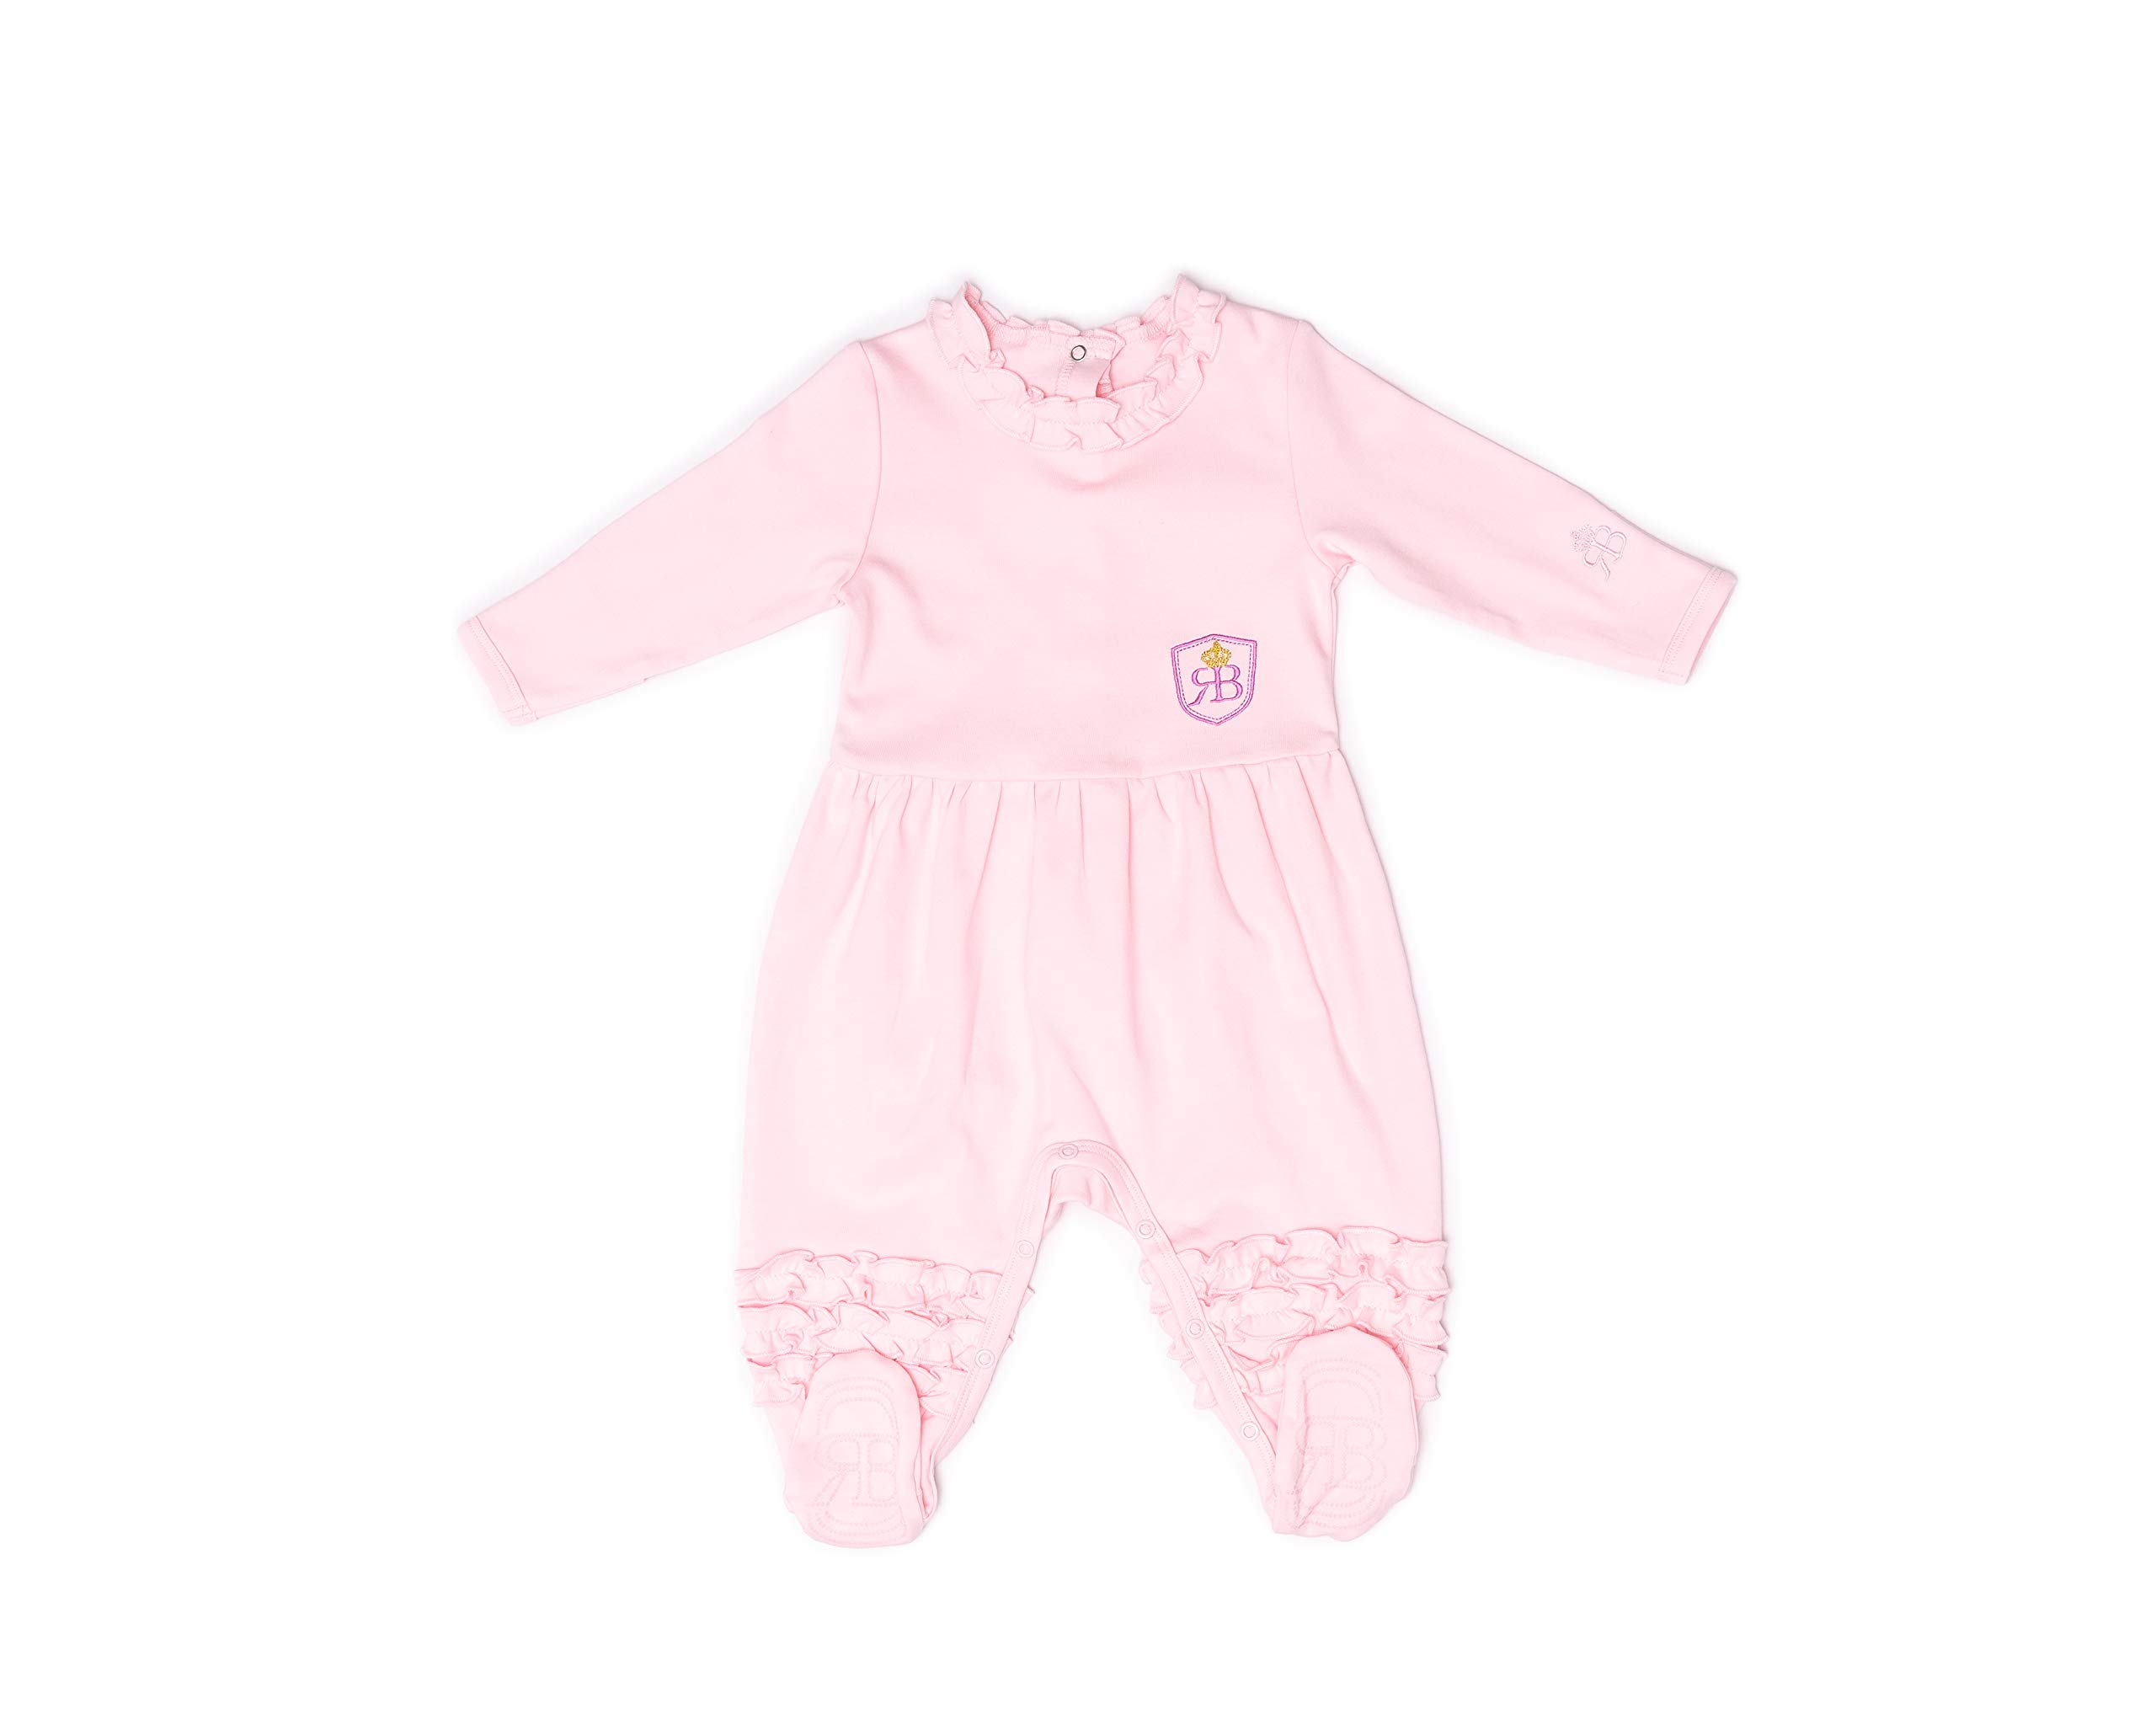 RB Royal Baby Organic Cotton Gloved-Sleeve Footed Overall, Footie (Little Ballerina) Pink